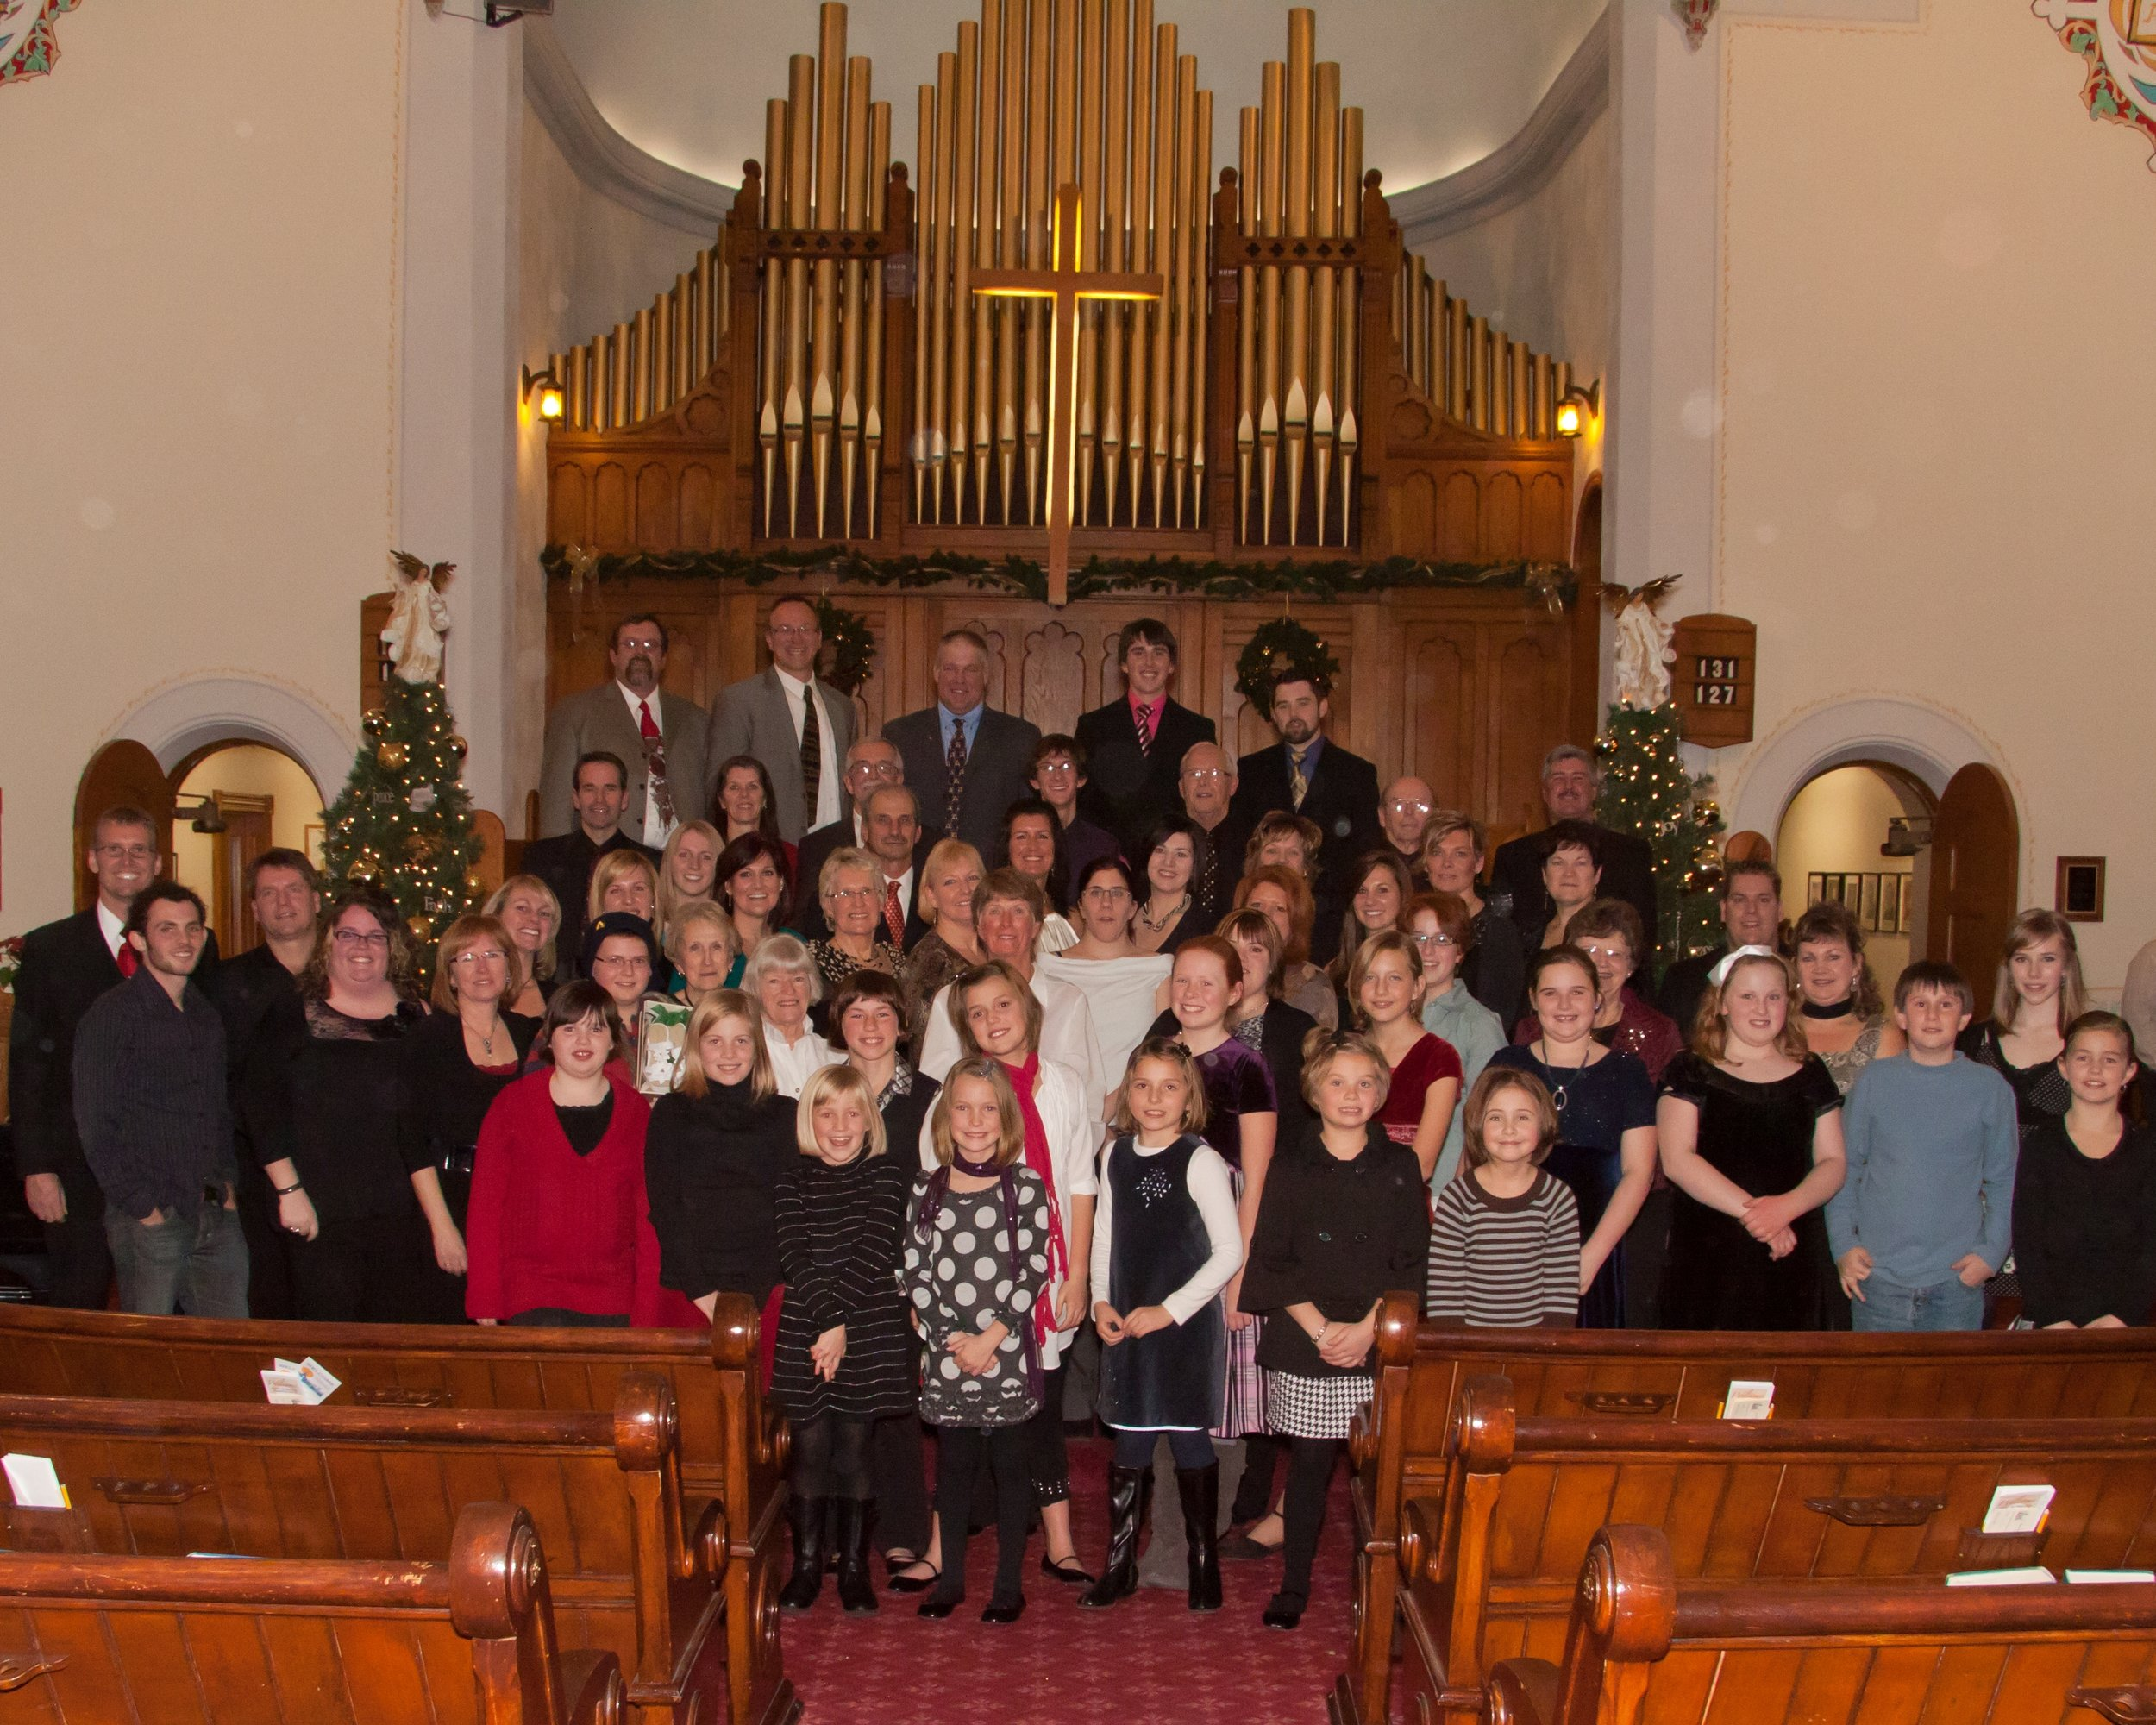 "2010 ""Music of Christmas"" Concert Back row: (Left to Right)  John Chapman, Allan Rothwell, Doug Johnston, Donald Skinner, Stewart Skinner  6th row:  Larry Skinner, Janet McDonald (keyboard) Don Harrison, Lee Mayes, Jim Henderson, Charlie Corry, Brian Hamilton  5th row:  Lauren Johns, Paul Karges, Lynn Kerr, Lisa Schaefer, Kelly Henderson, Jill Reading, Jean Jinkinson, Tyler Schaefer  4th row:  Chris McIntosh (drums), Brian McMurren (bass guitar), Agnes Henderson (piano), Karli Purcell, Kim Henderson, Lois Aitchison, Laura Tryssenaar, Jessica Drummond, Michelle Hemingway, Alicia Lockie, Gloria McCallum, Ethel Corry, Lee Anne Andriessen, Kathleen Skinner  3rd row:  Patrick Main (guitar), Nicole Kaufman, Nancy Skinner (conductor), Noah Andriessen, Marlene Henderson, Grace Burrough, Marion Bristowe, Heather Dafoe  2nd row:  (Children's Choir) Alexis Johnston, Hayleigh Royce, Ann Rothwell, Marlee Ament, Erica Hemingway, Mallory Coleman, Brooklyn Johnston, Emily MacKay, Ryan Mayes, Claire Calder  Front row:  Emily Royce, Brynn Ament, Chloe Hemingway, Sarah Reading, Kayla Fletcher"